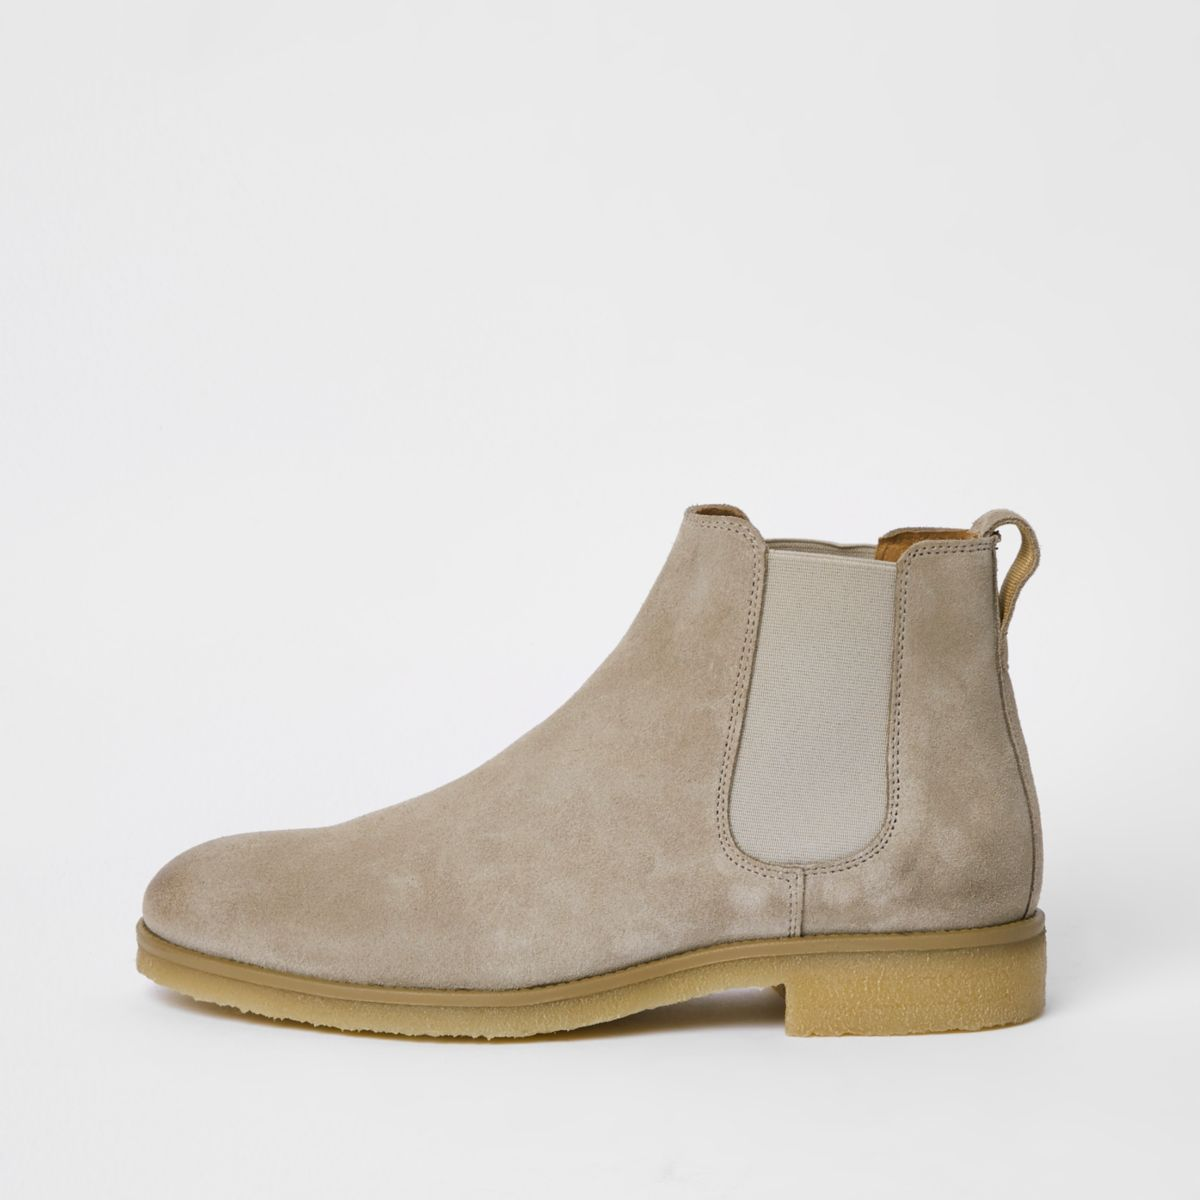 Stone suede wide fit chelsea boots